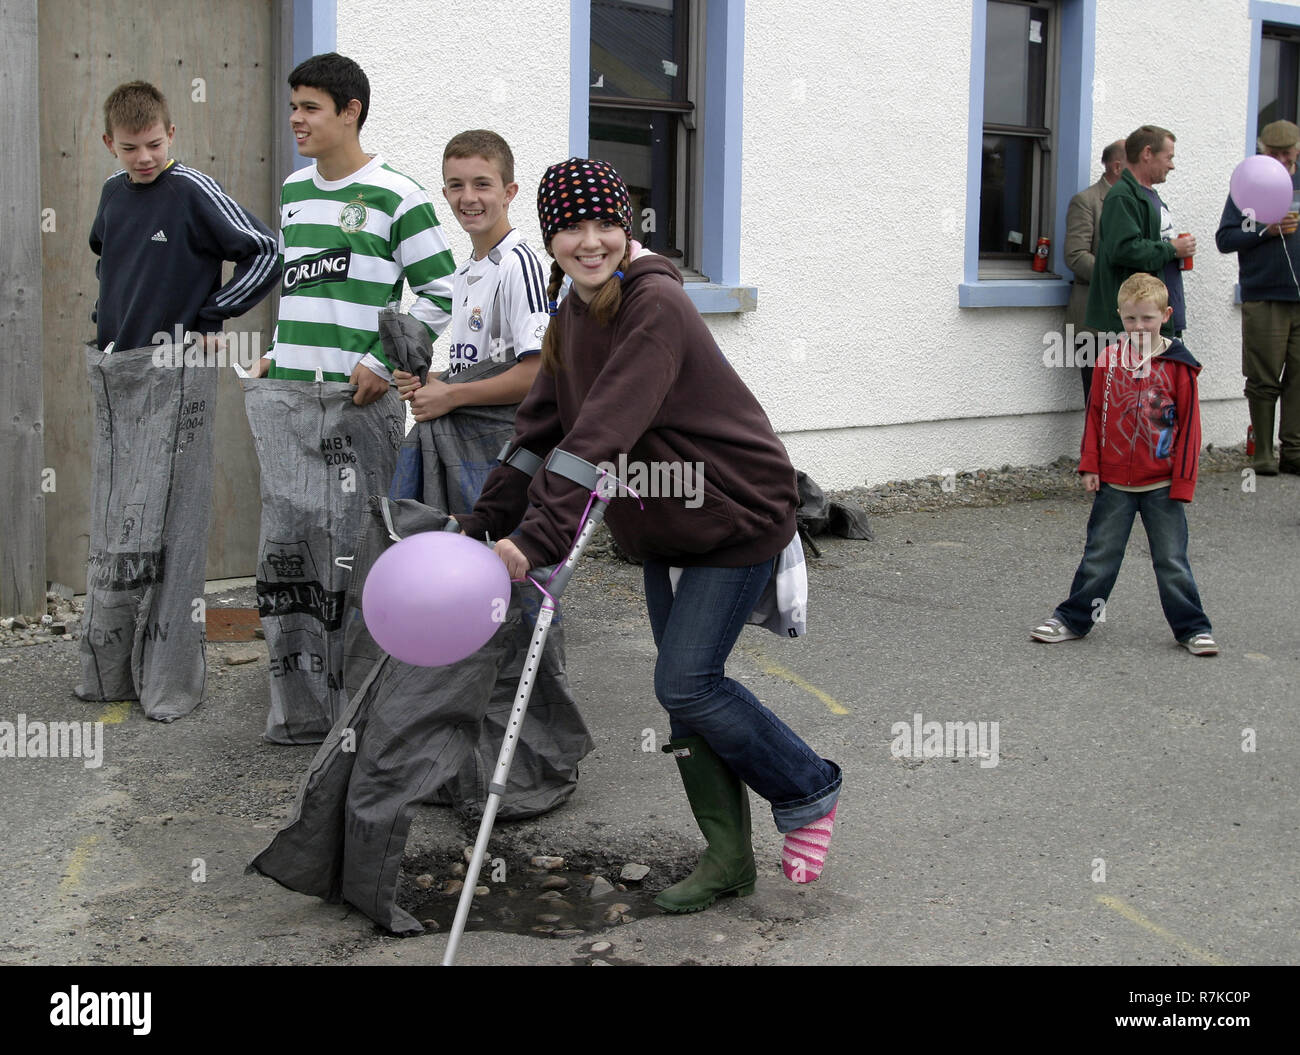 A rather optimistic girl, on crutches, enters the sack race at the small hamlet of Knoydart's gala day. Knoydart is a small, remote hamlet that sits on the Knoydart peninsula in the north west highlands in Scotland and can only be reached by boat or on foot. - Stock Image